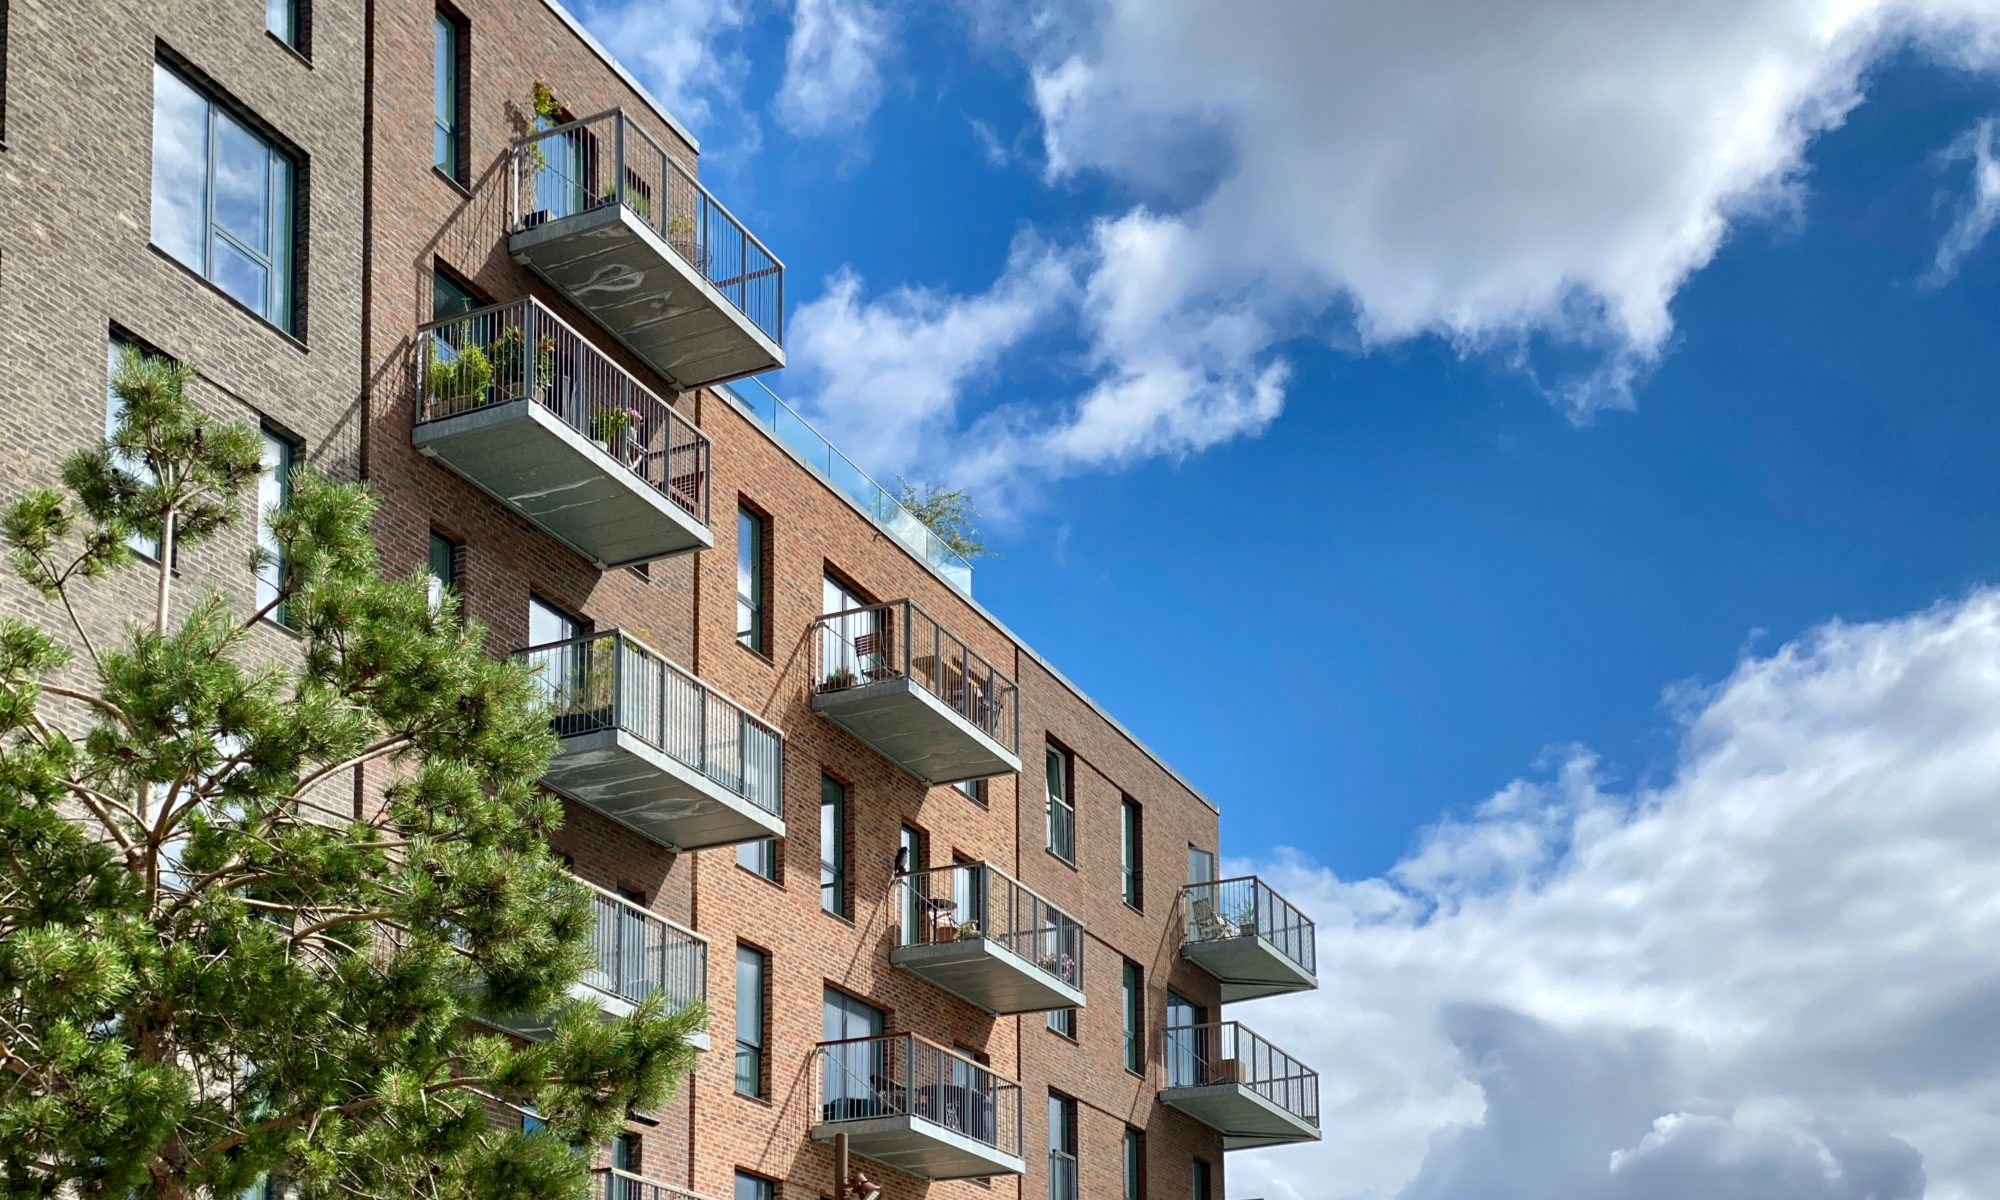 questions to ask rent applicants